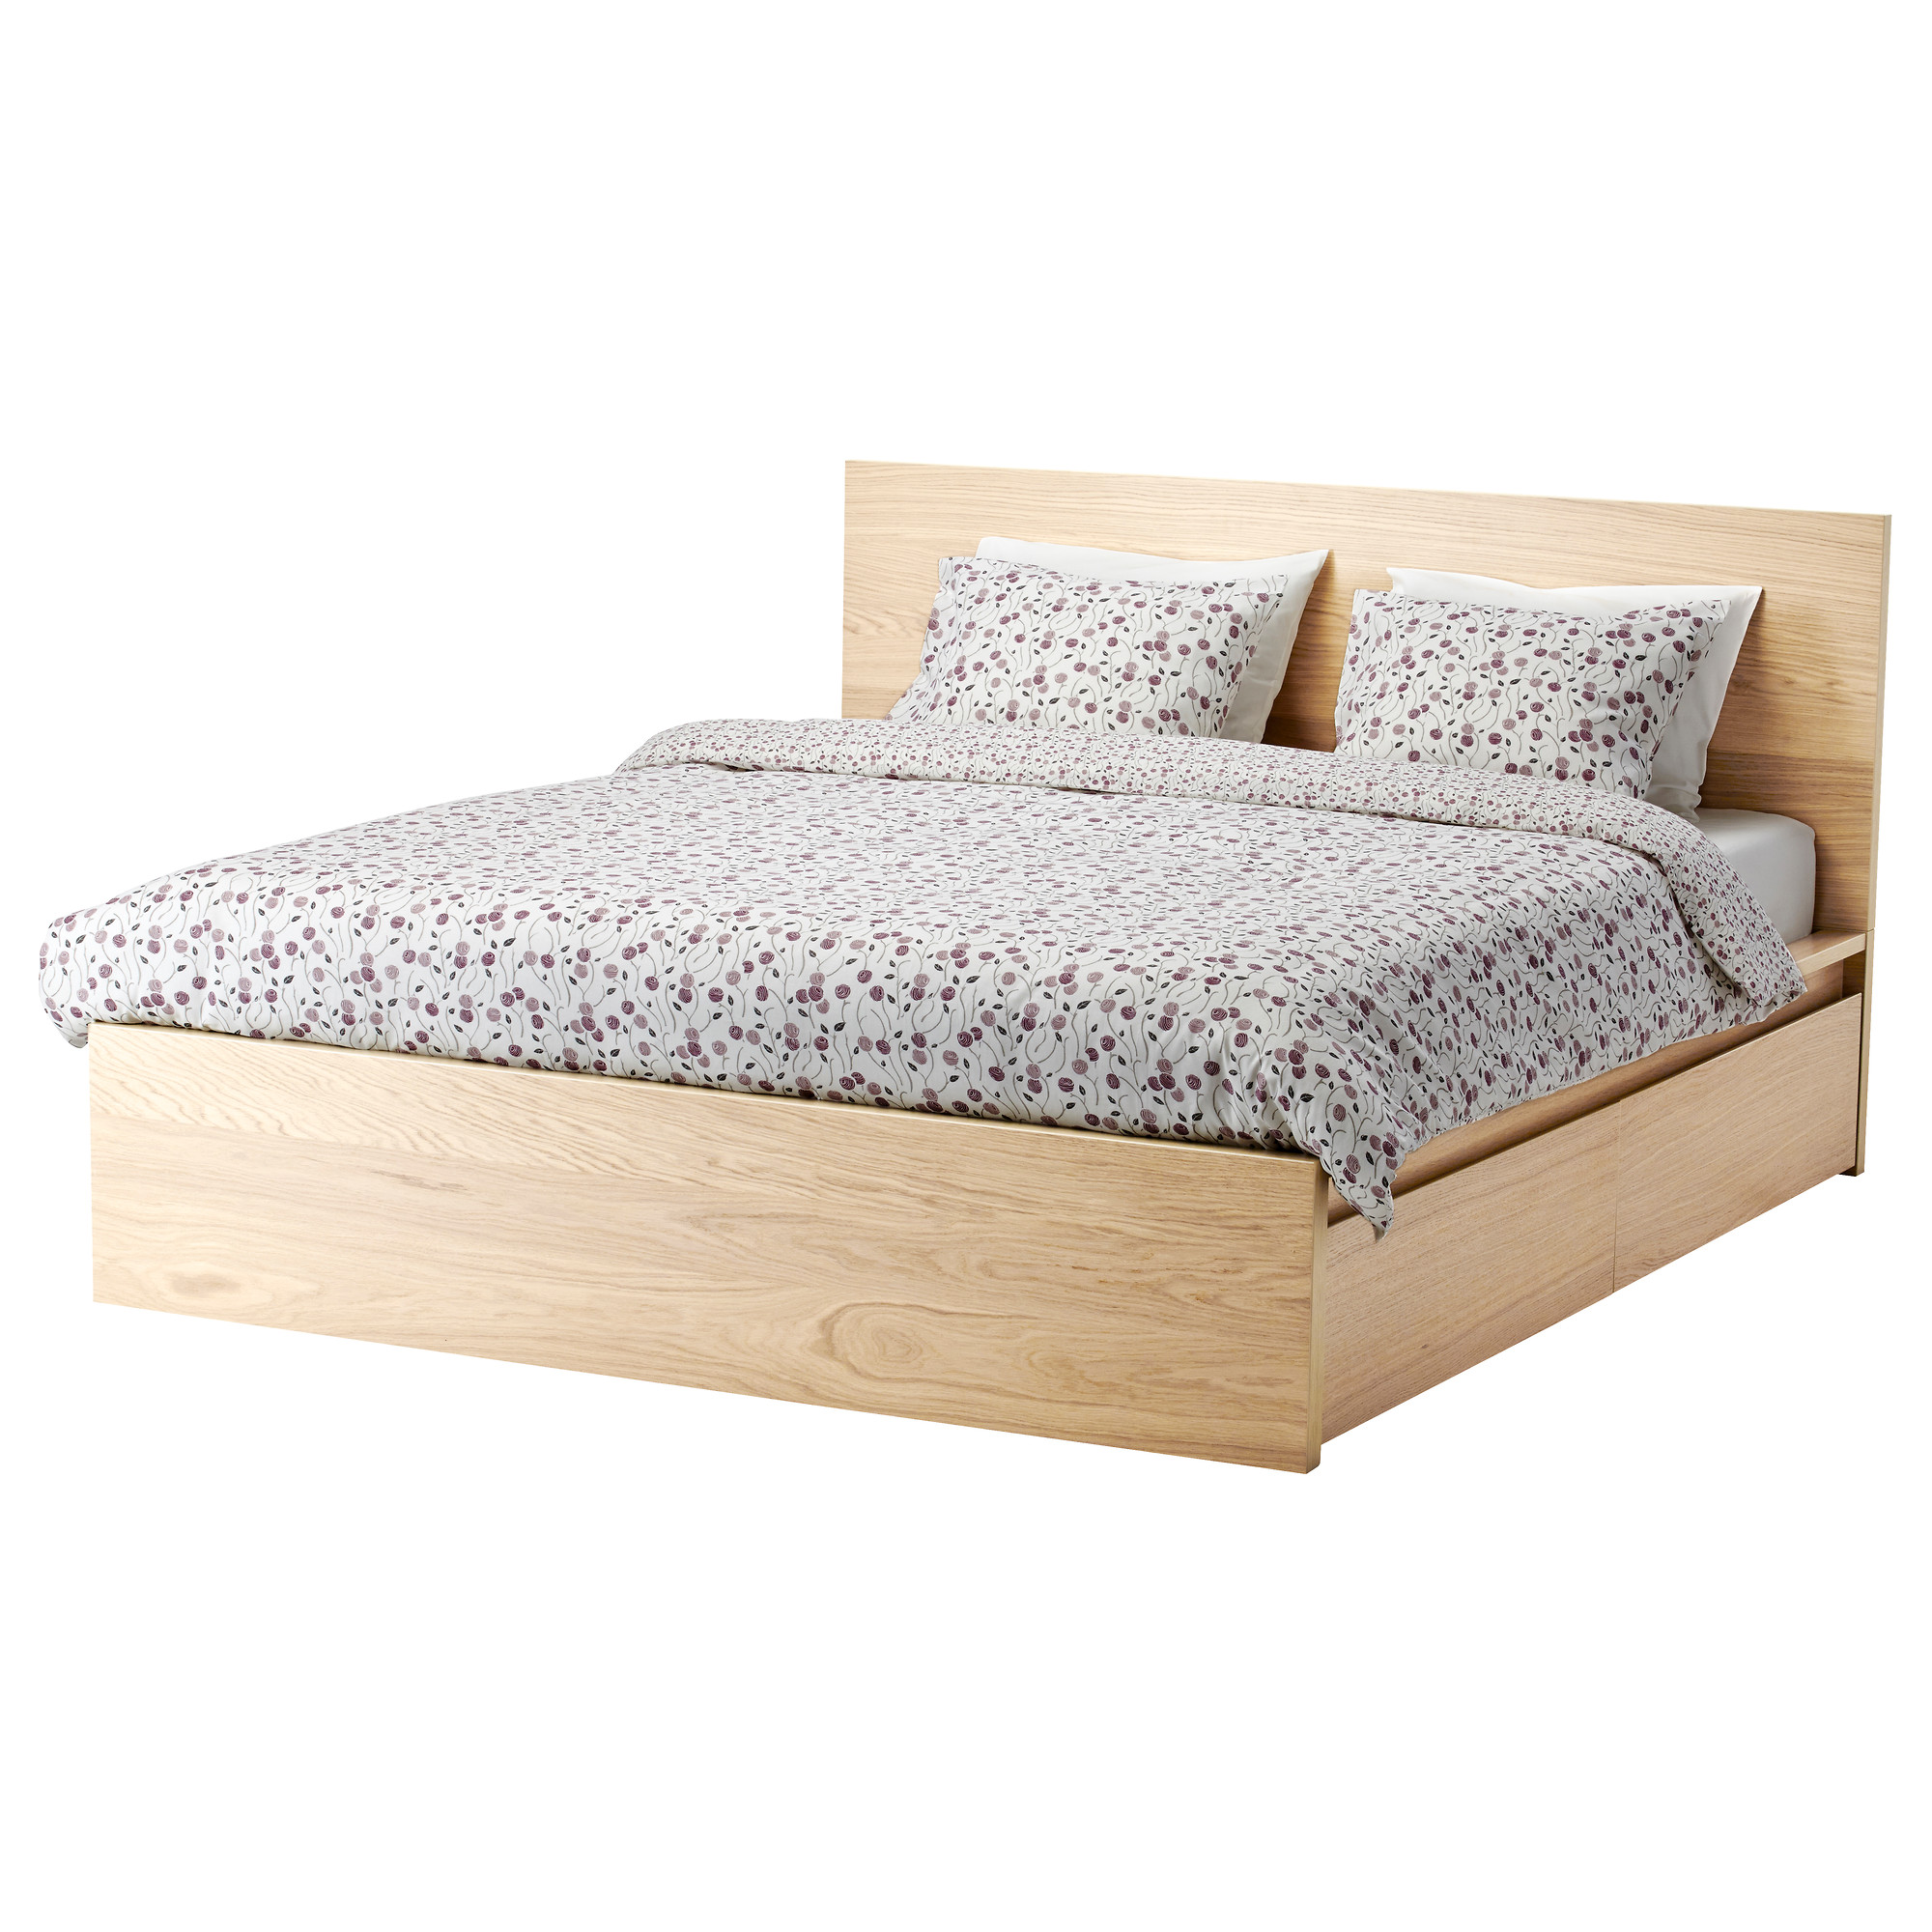 malm high bed frame2 storage boxes white stained oak veneer lury length